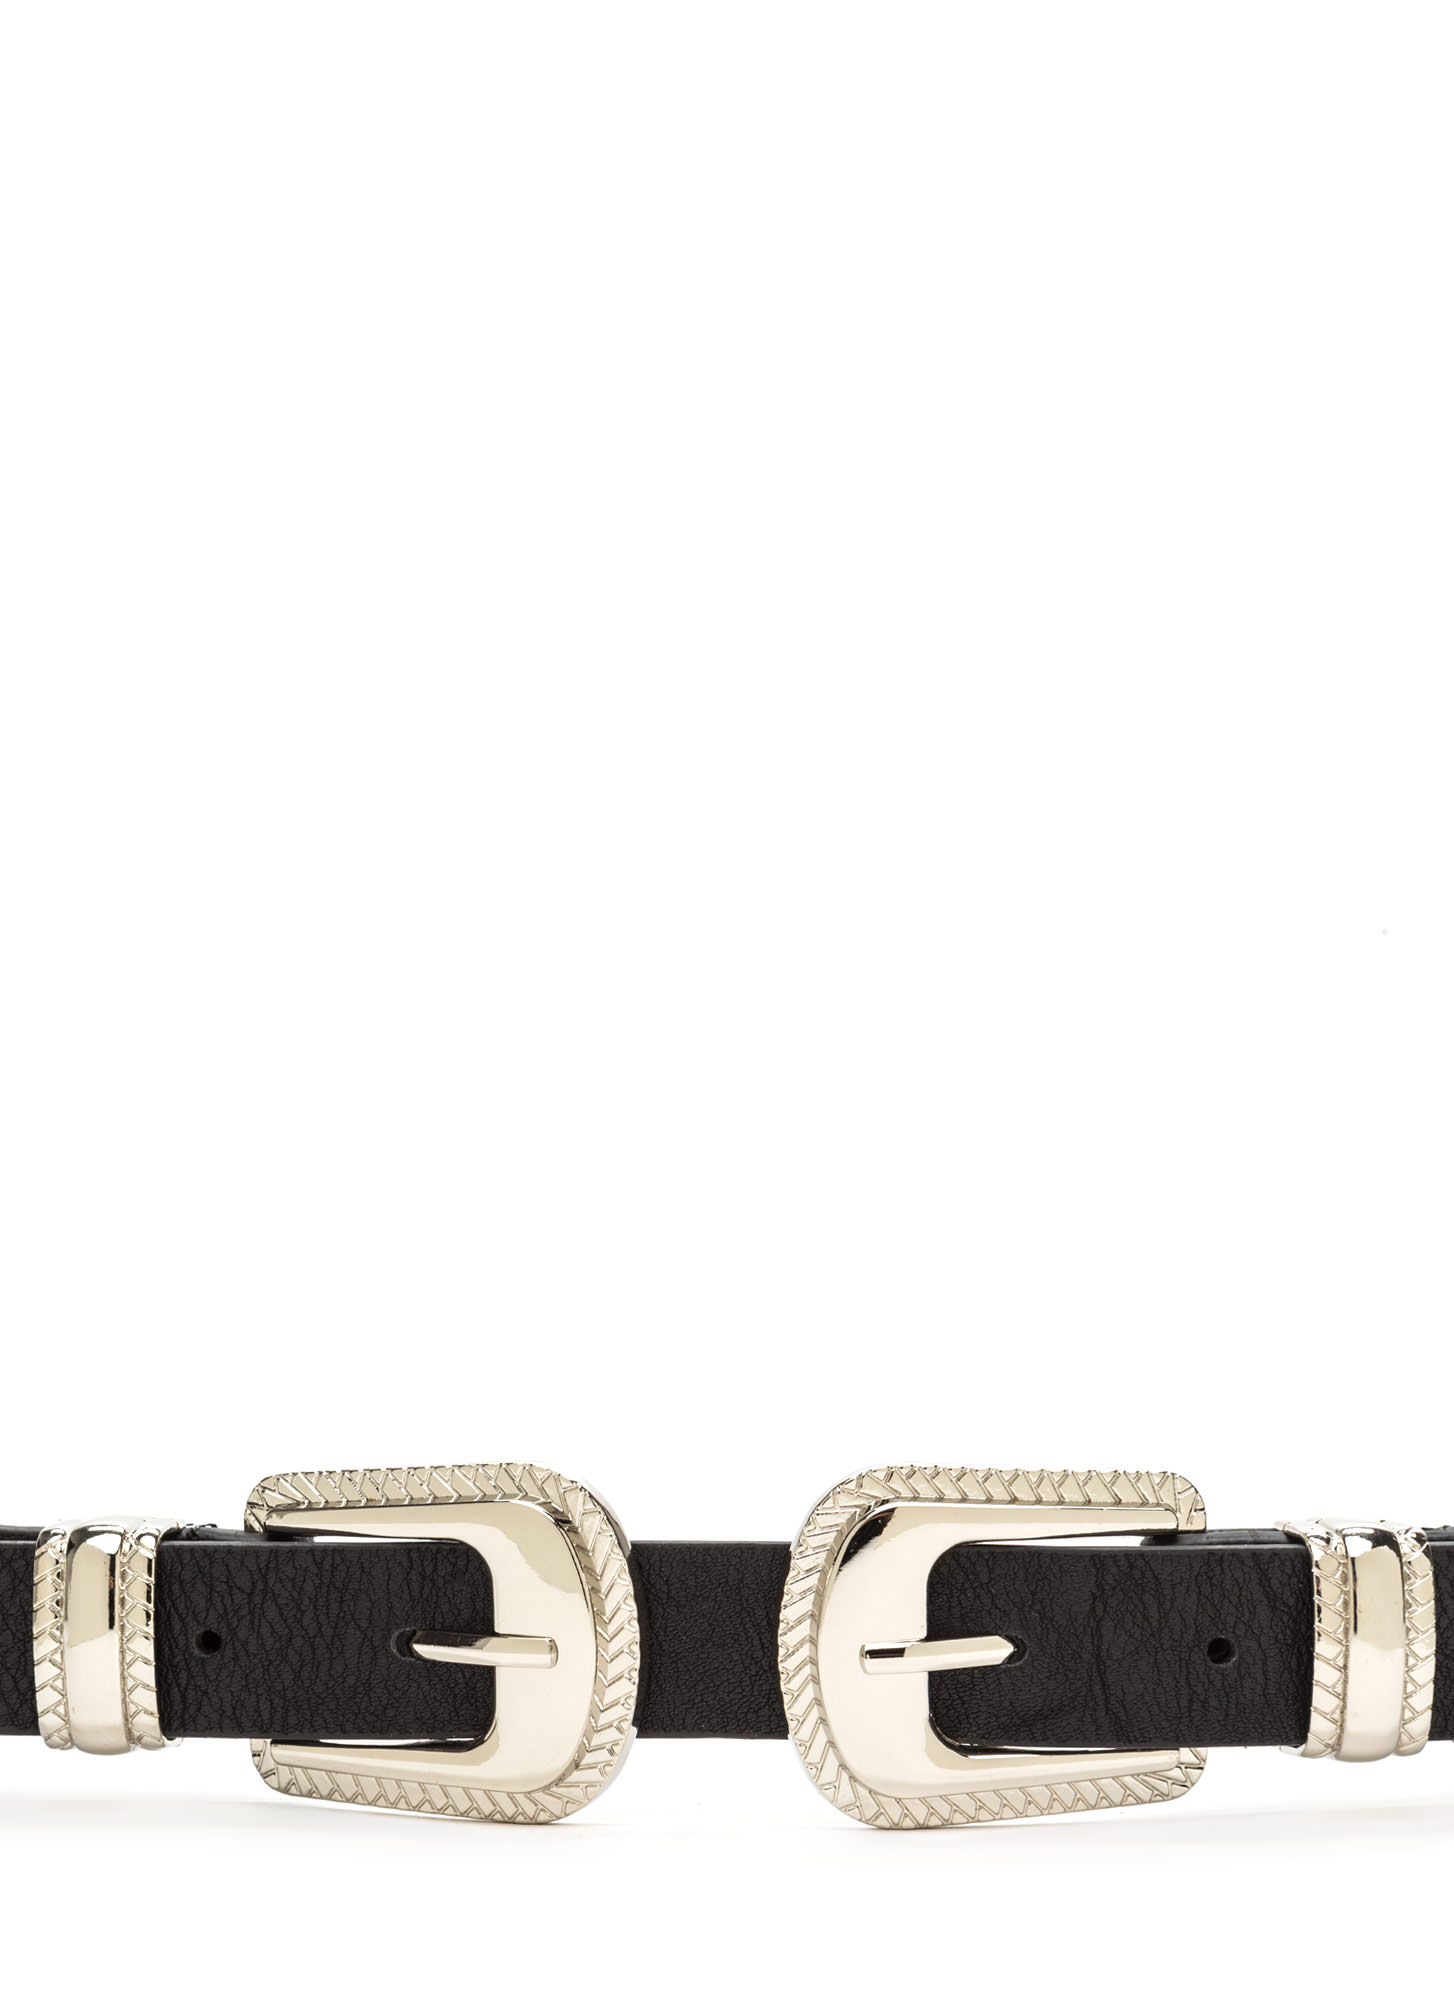 Quick Draw Stretchy Double Buckle Belt SILVER